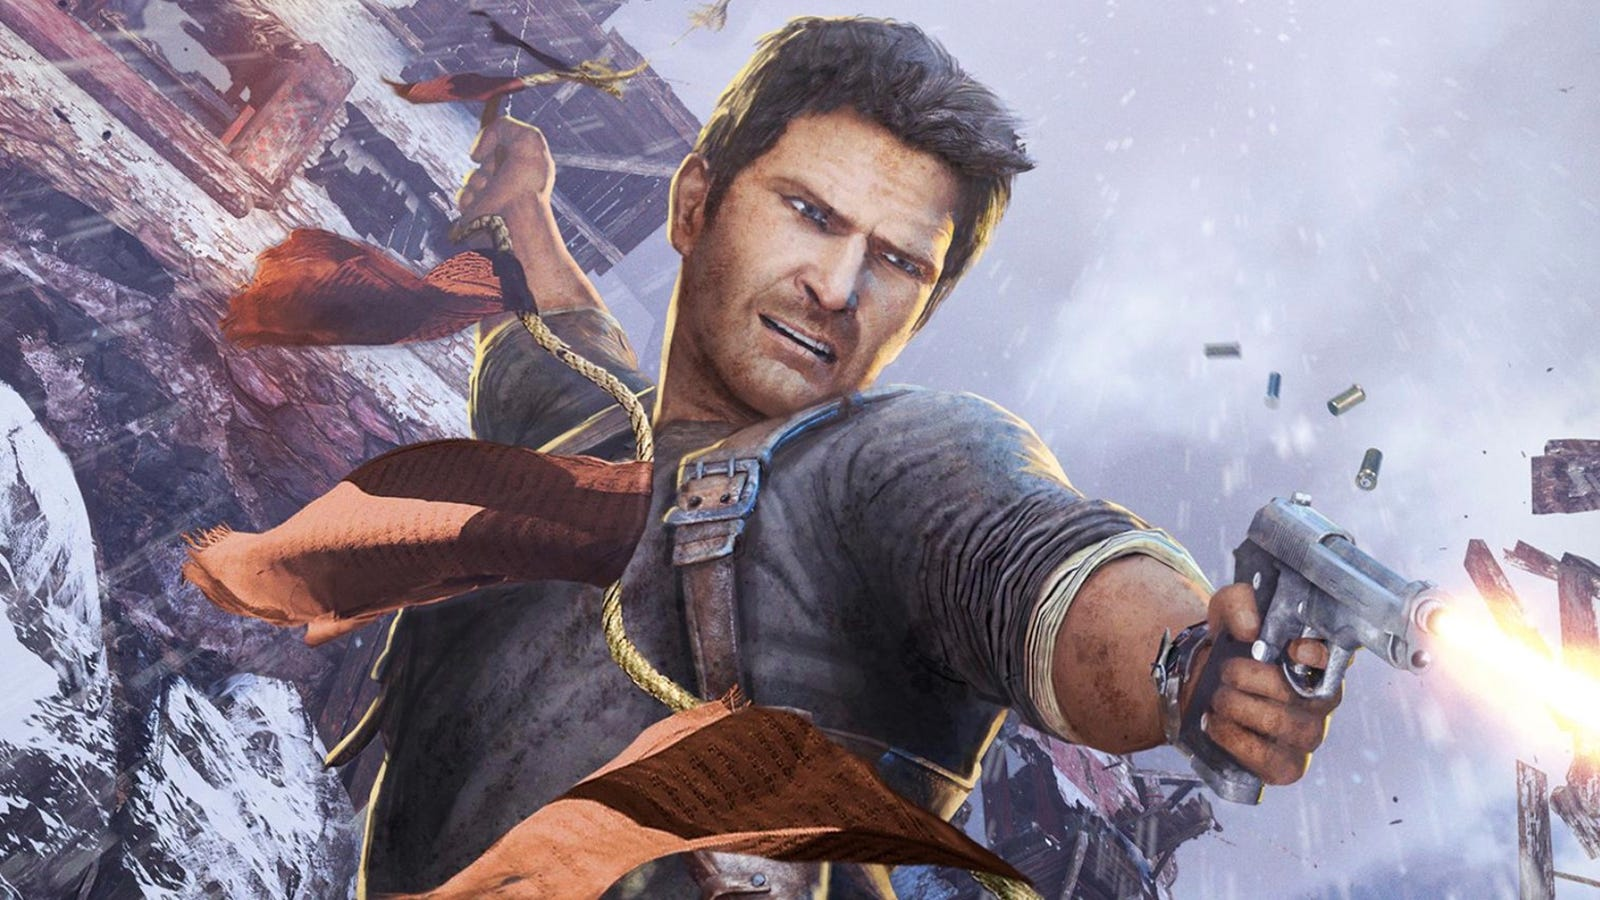 The Uncharted Movie Adaptation Actually Has a Release Date